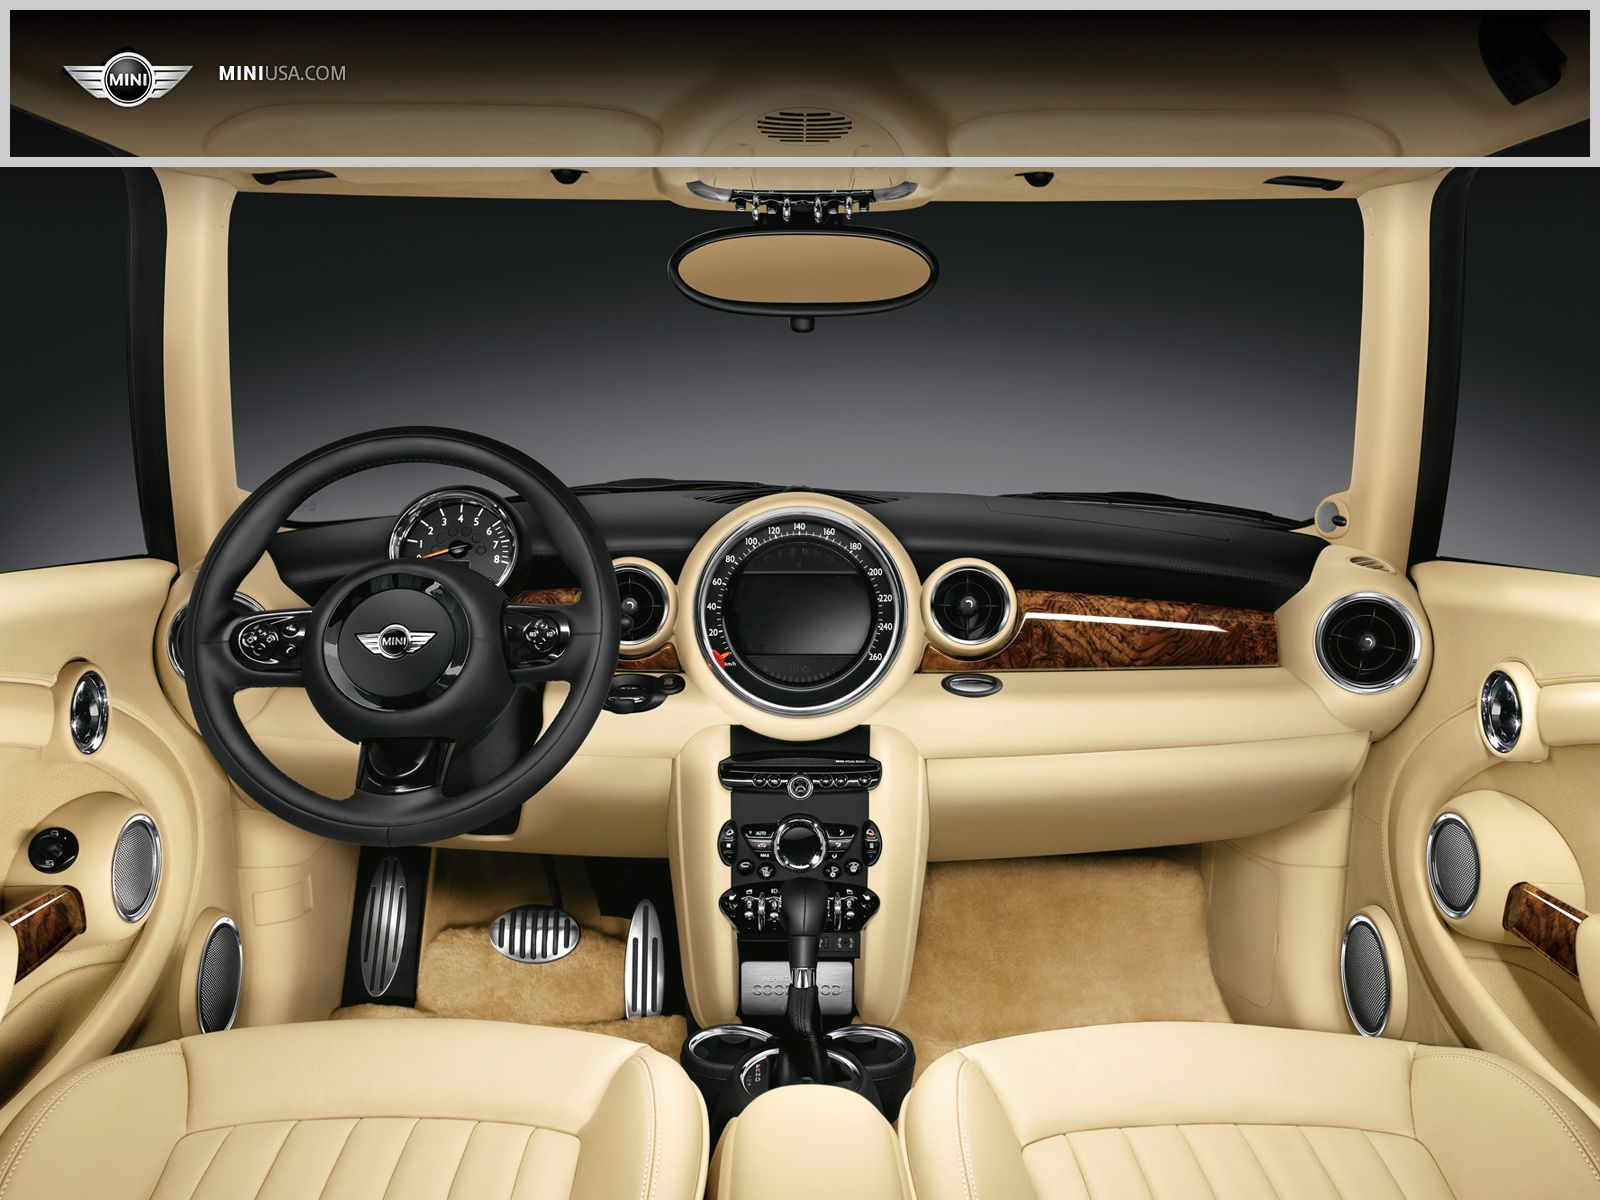 Limited Edition Rolls Royce Mini Interior I Want This